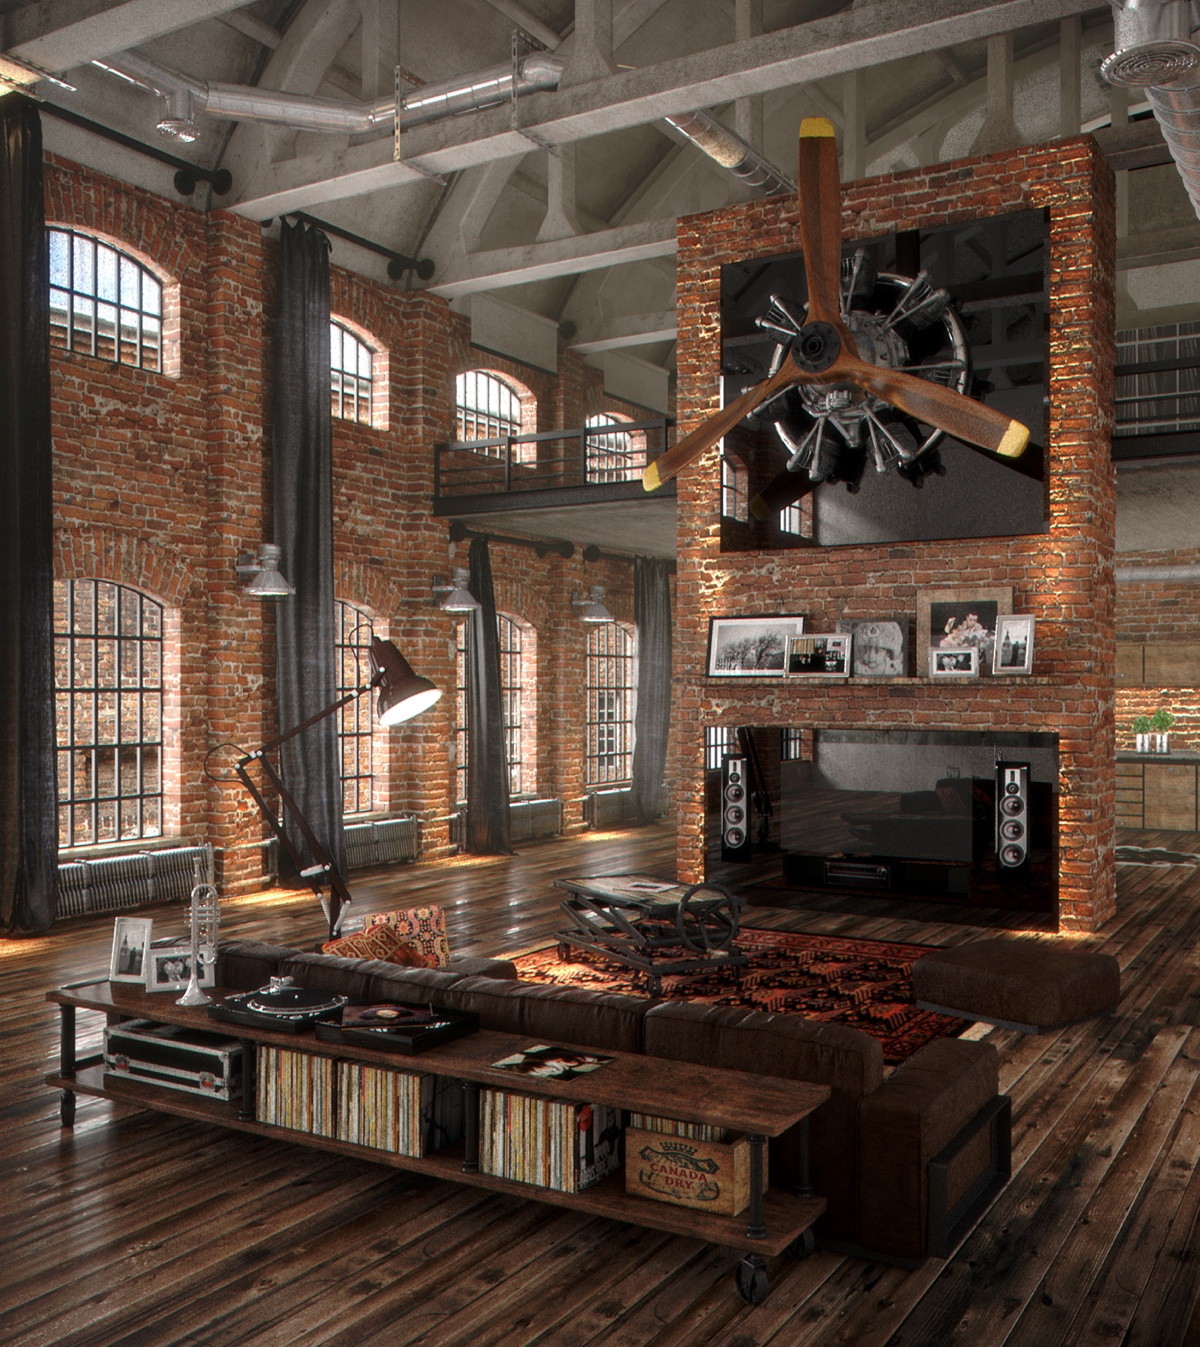 Industrial Home Design Spectacular Modern Industrial Home: 40 Incredible Lofts That Push Boundaries